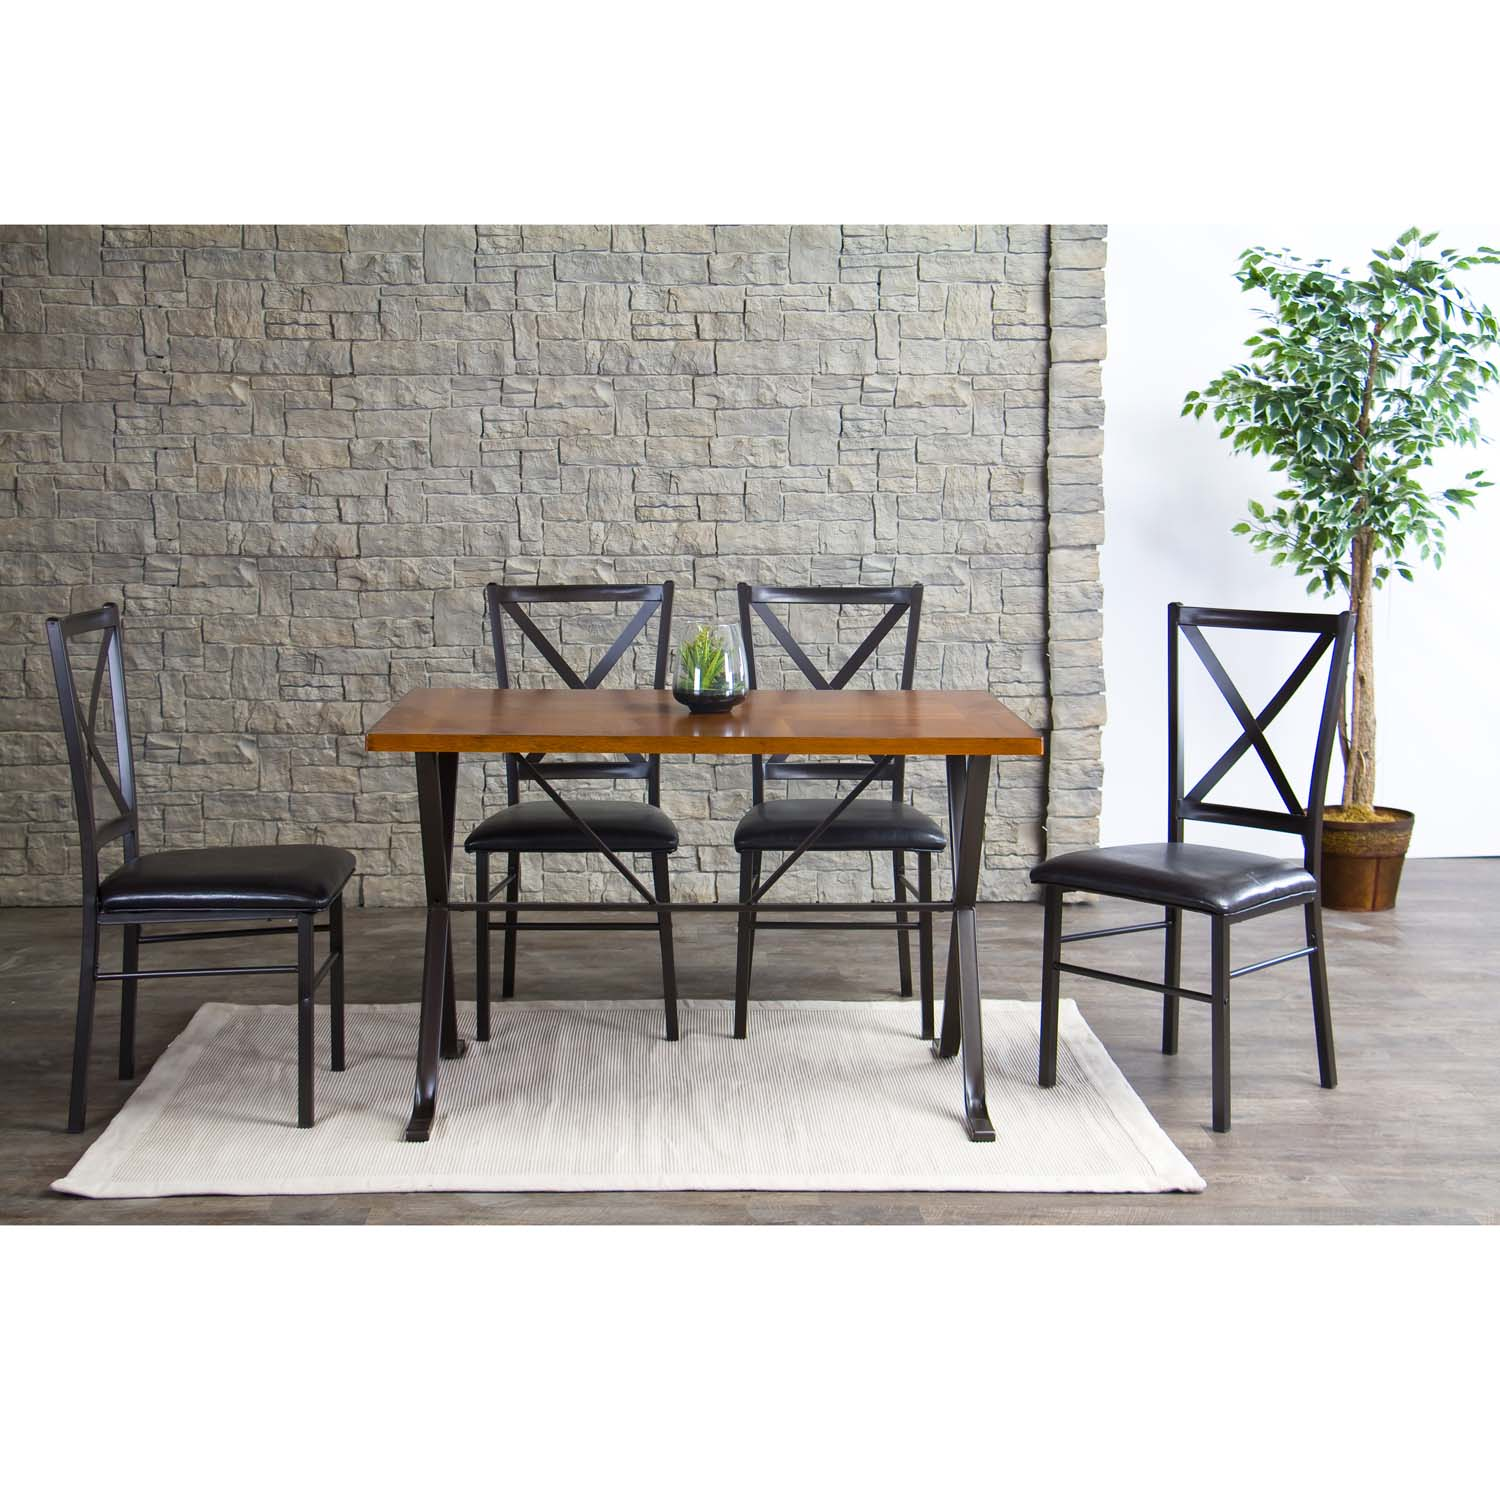 Baxton Studio Rexroth Metal Contemporary Dining Chairs Set of 4